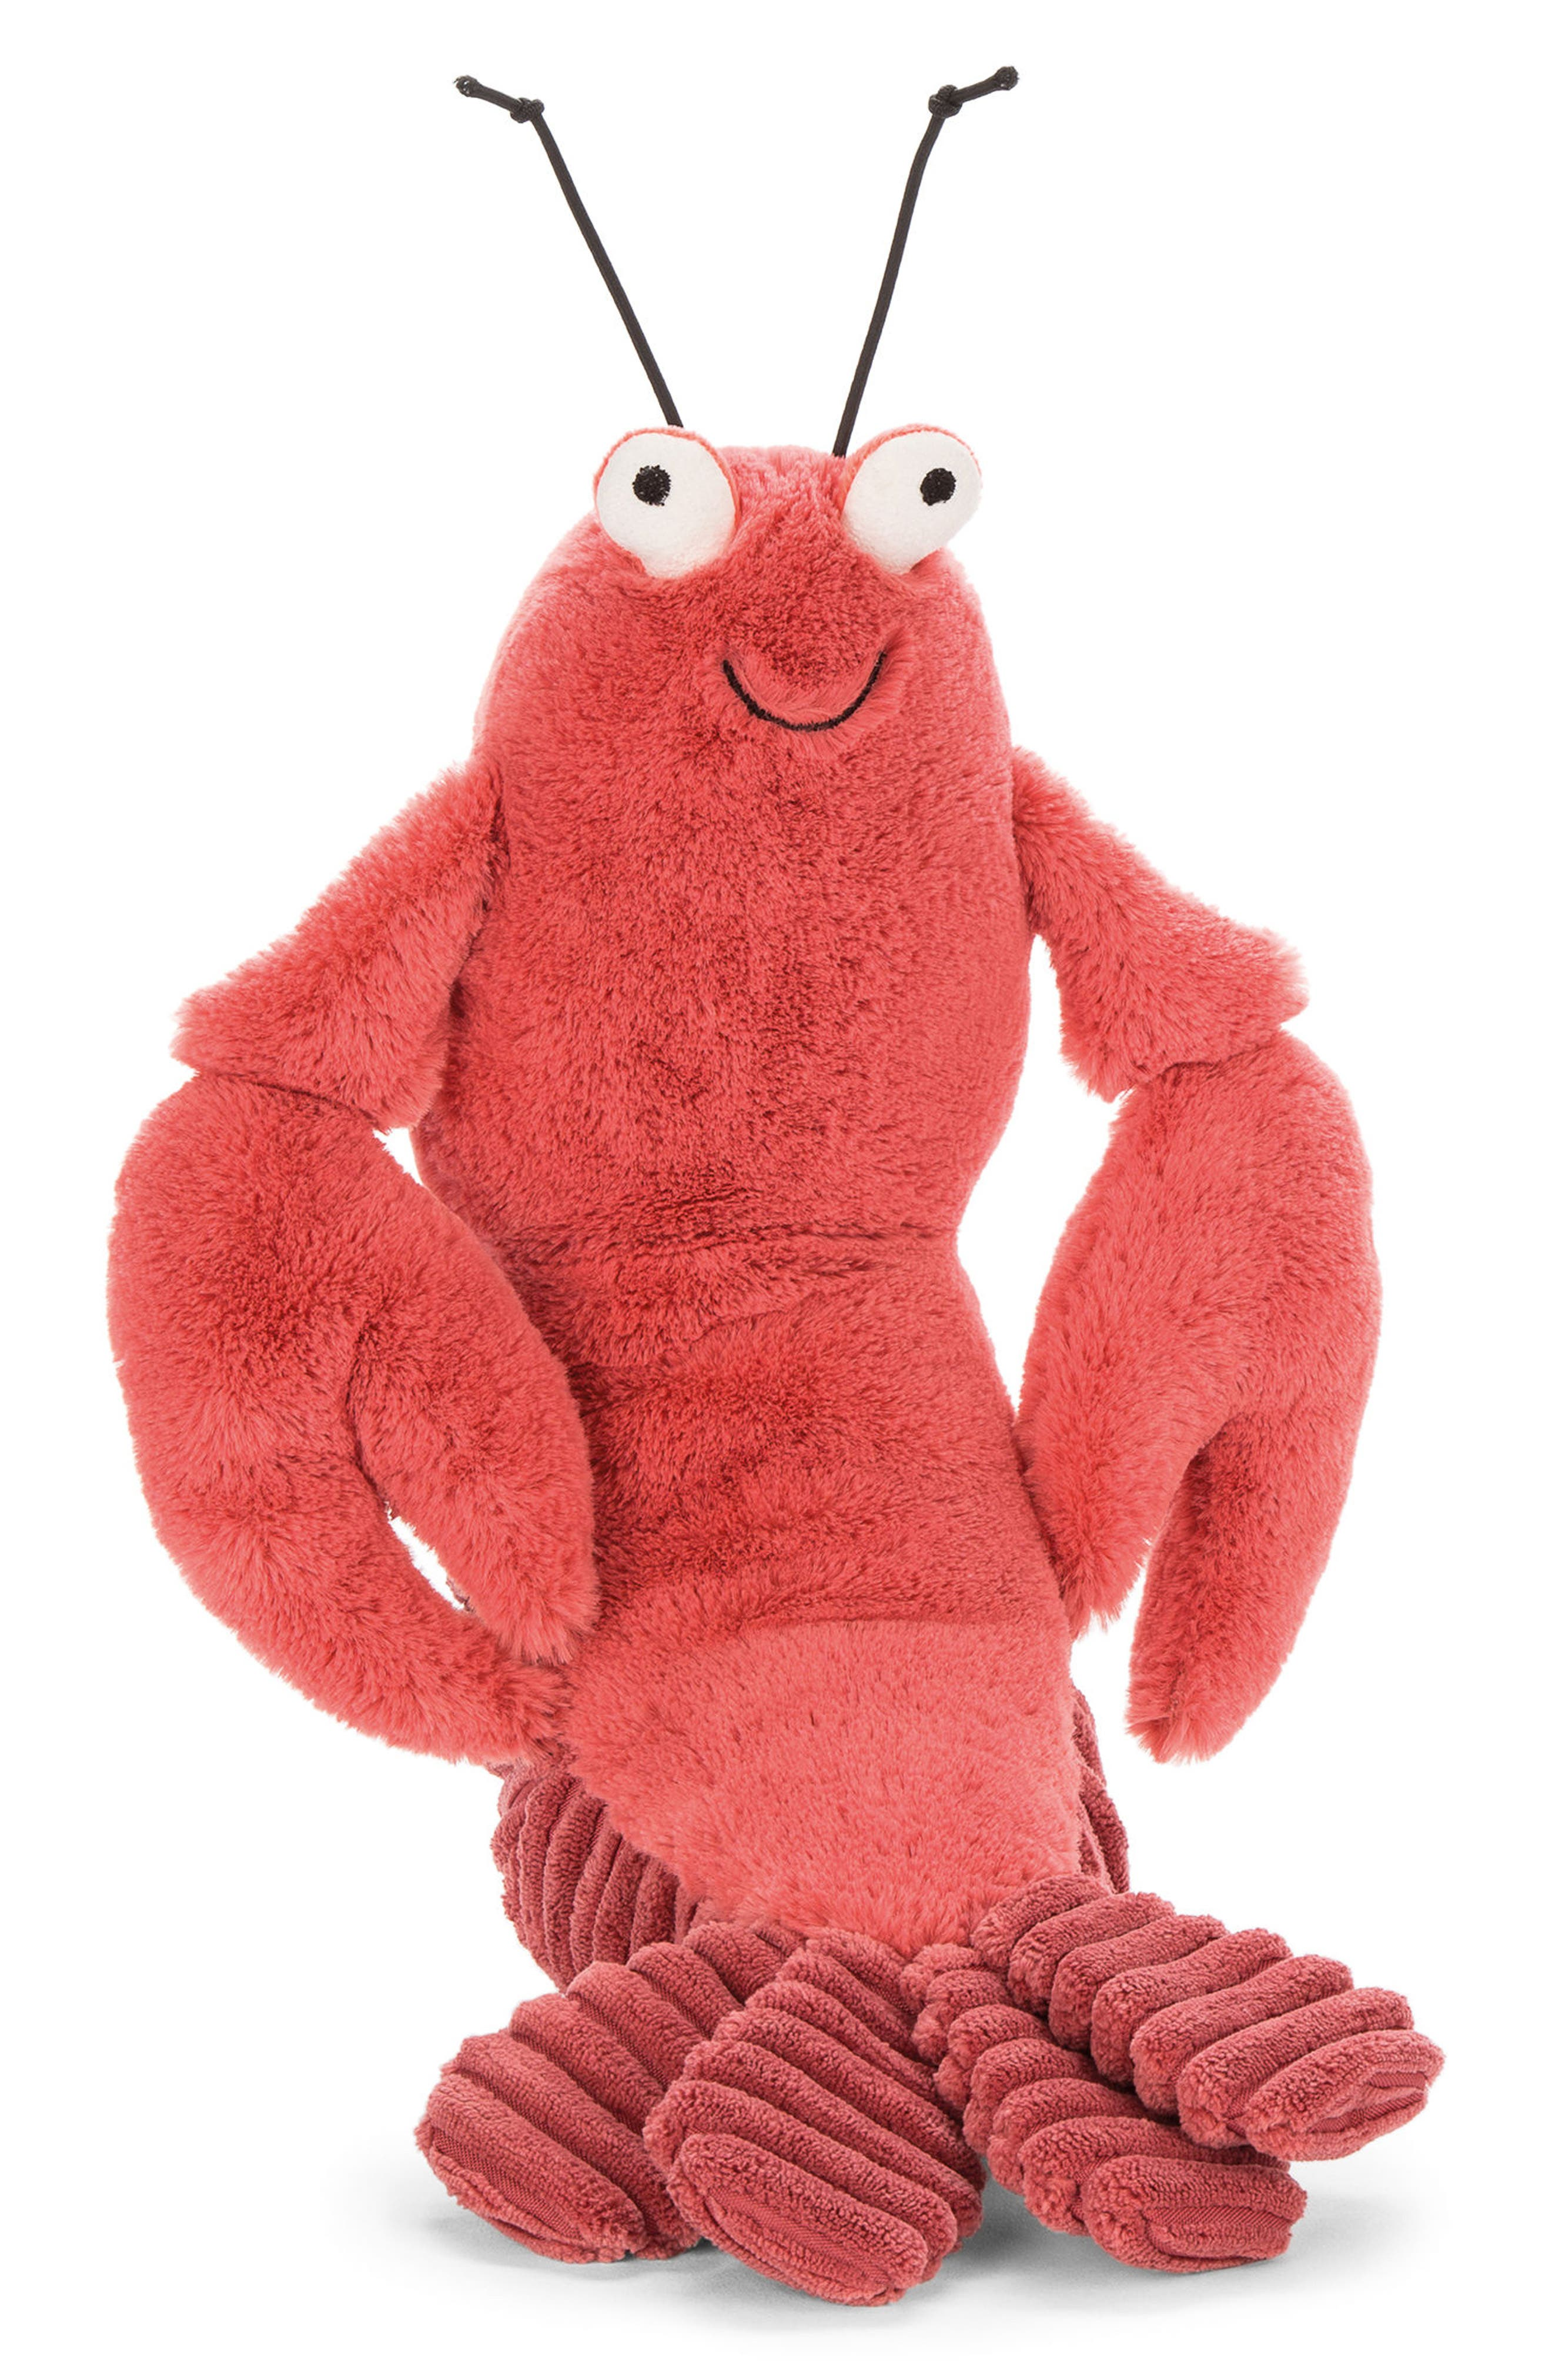 Larry Lobster Stuffed Animal,                         Main,                         color, Red